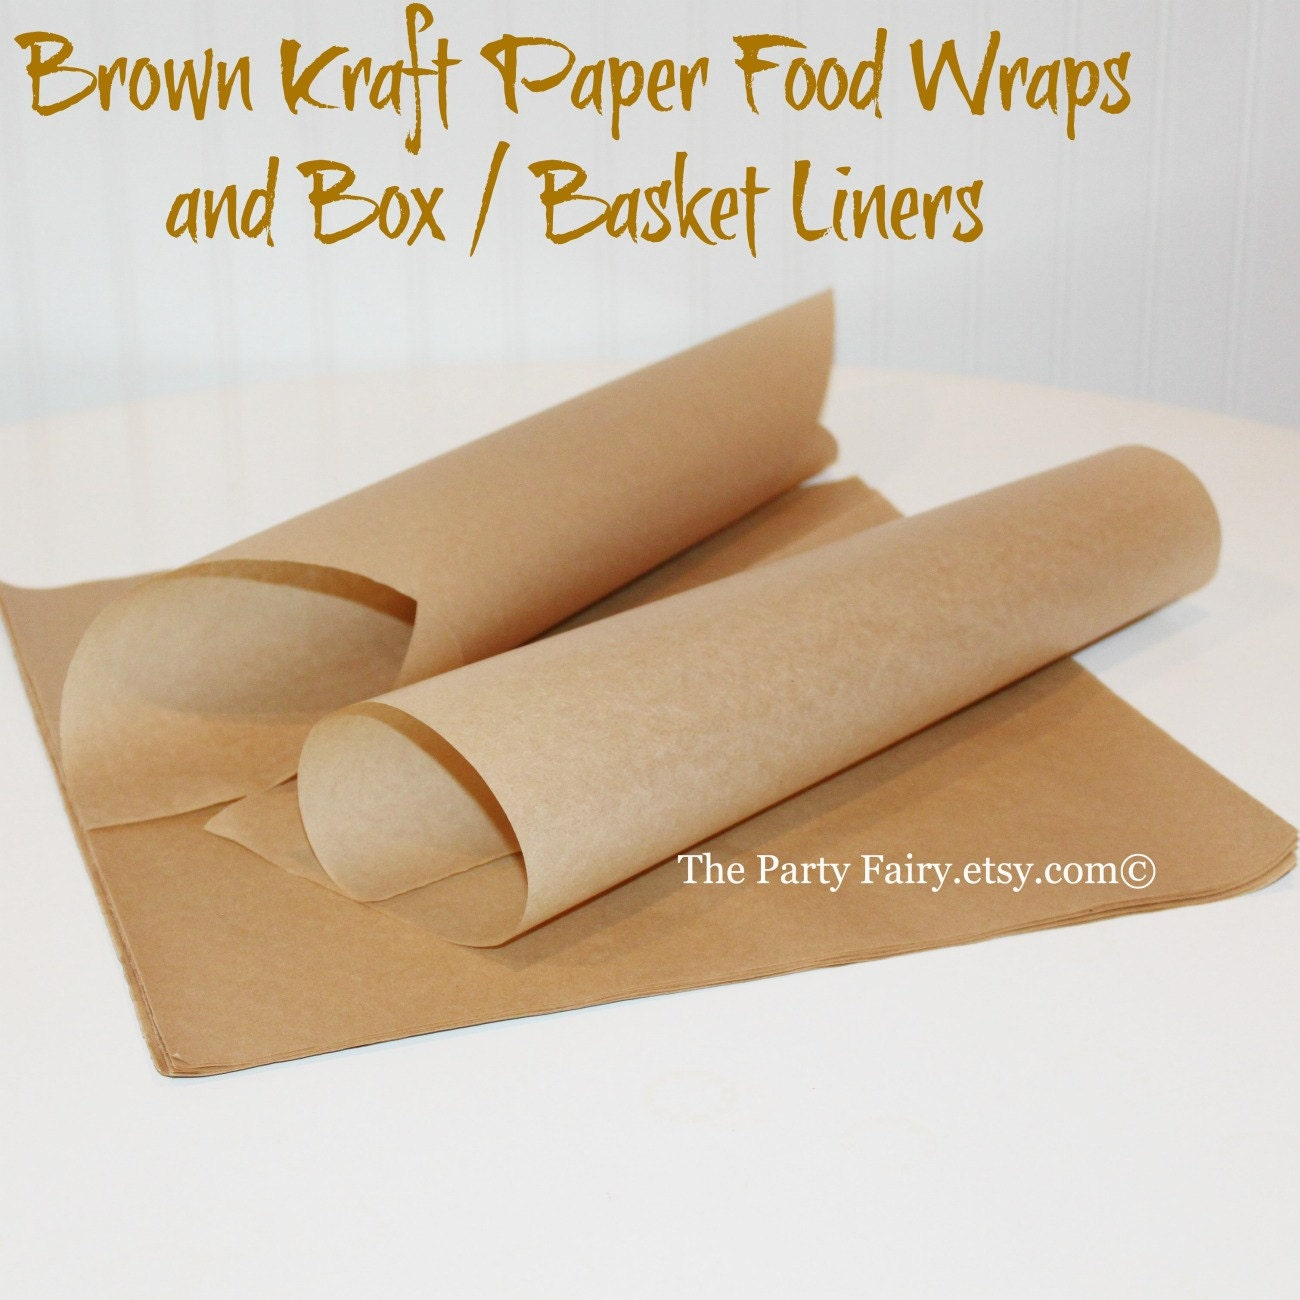 Relatively Brown Kraft Paper Food Wraps25 Sandwich PaperFood Basket AI19